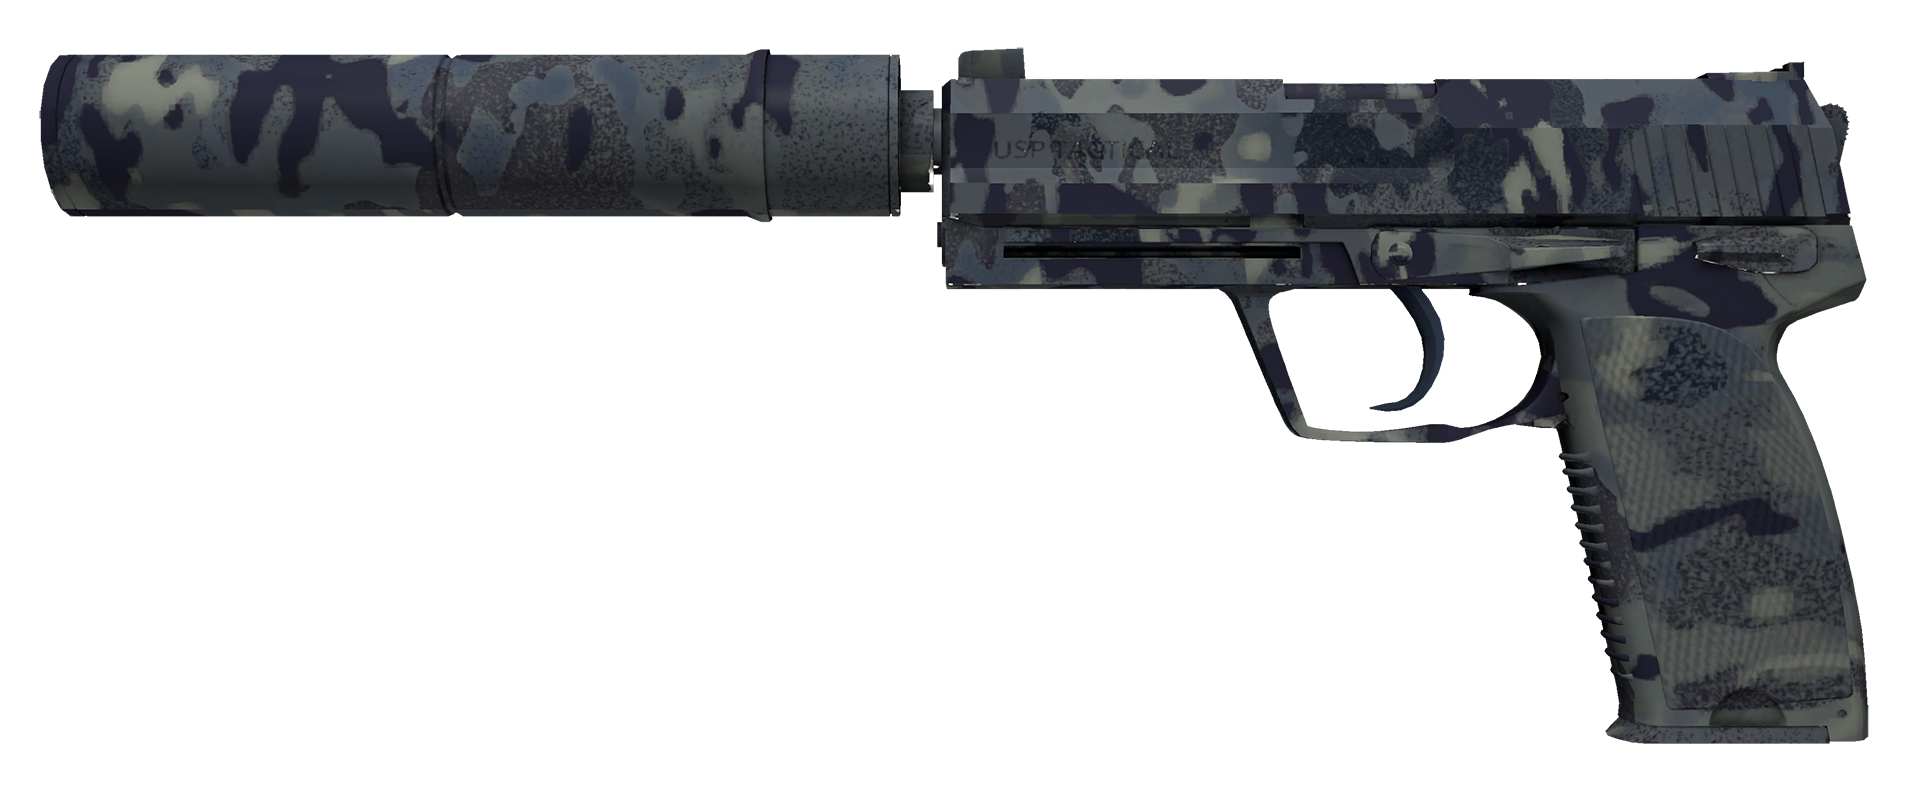 USP-S Night Ops Large Rendering